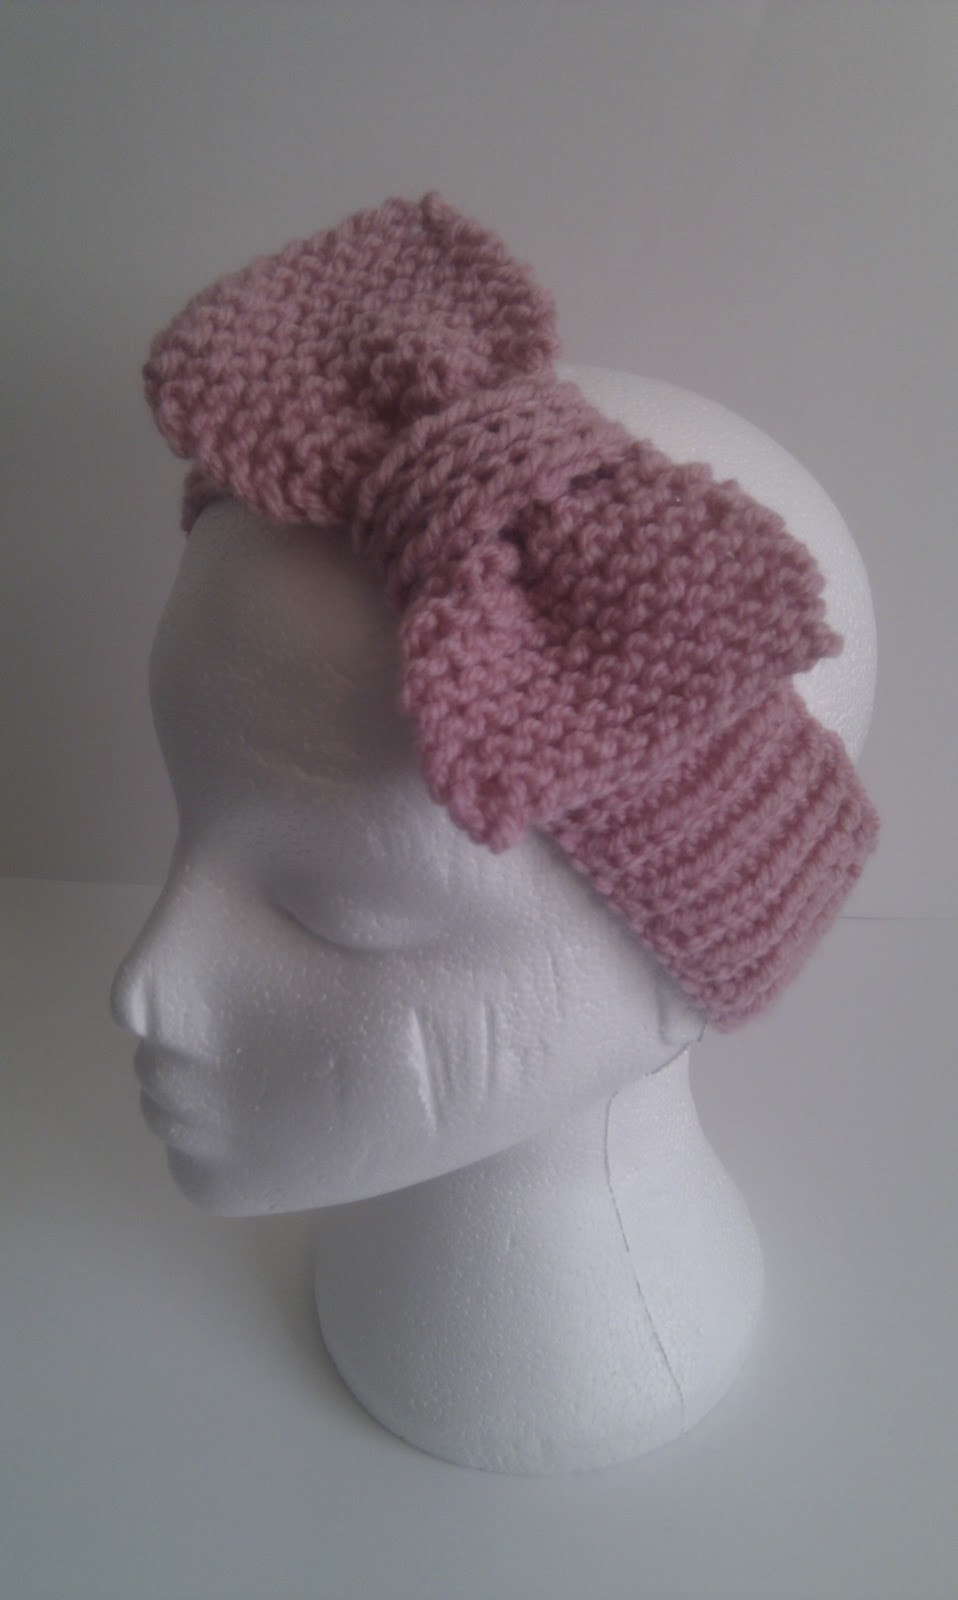 Knitted Headband With Bow Pattern : Musings of a knit-a-holic from Wales: Free Knitting Pattern: Beau Bow Headband